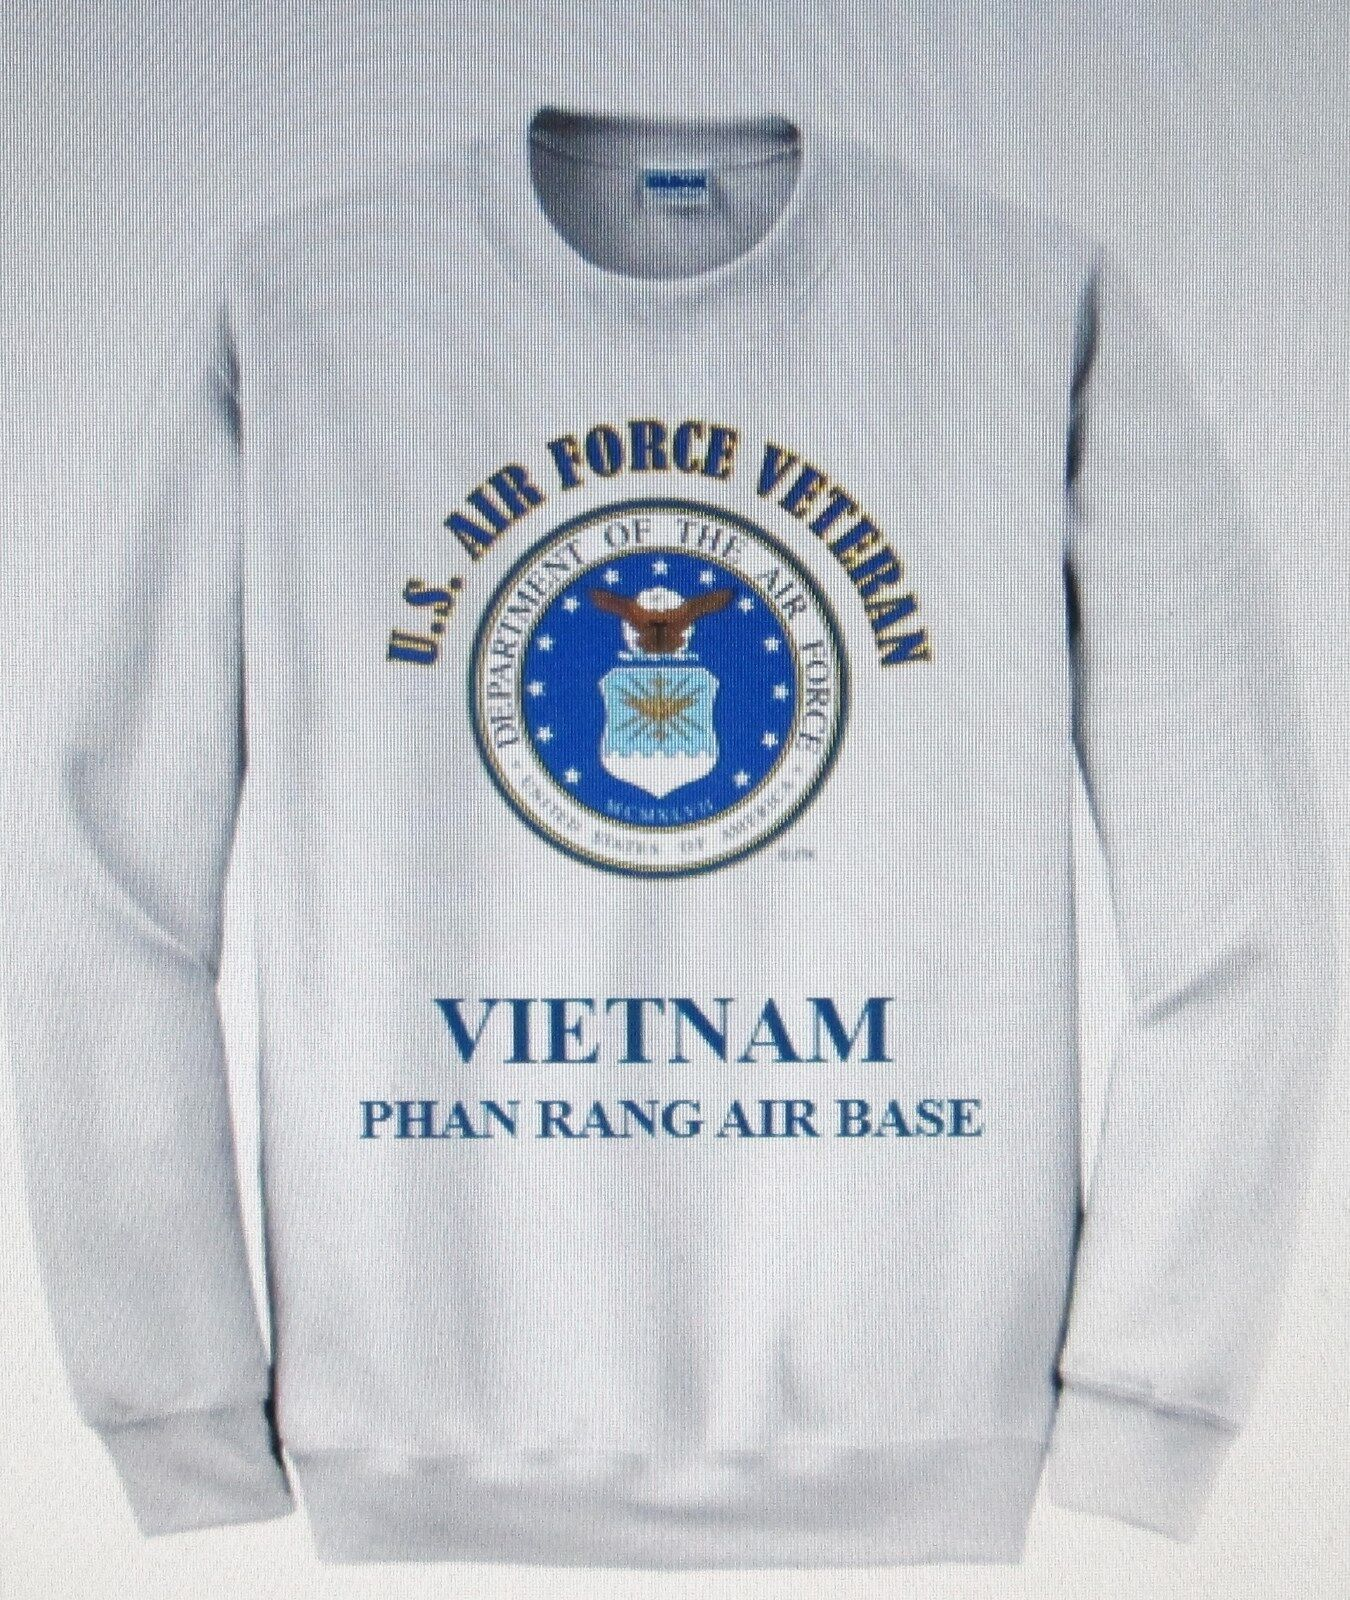 VIETNAM  PHAN RANG AIR BASE U.S. AIR FORCE EMBLEM SWEATHemd